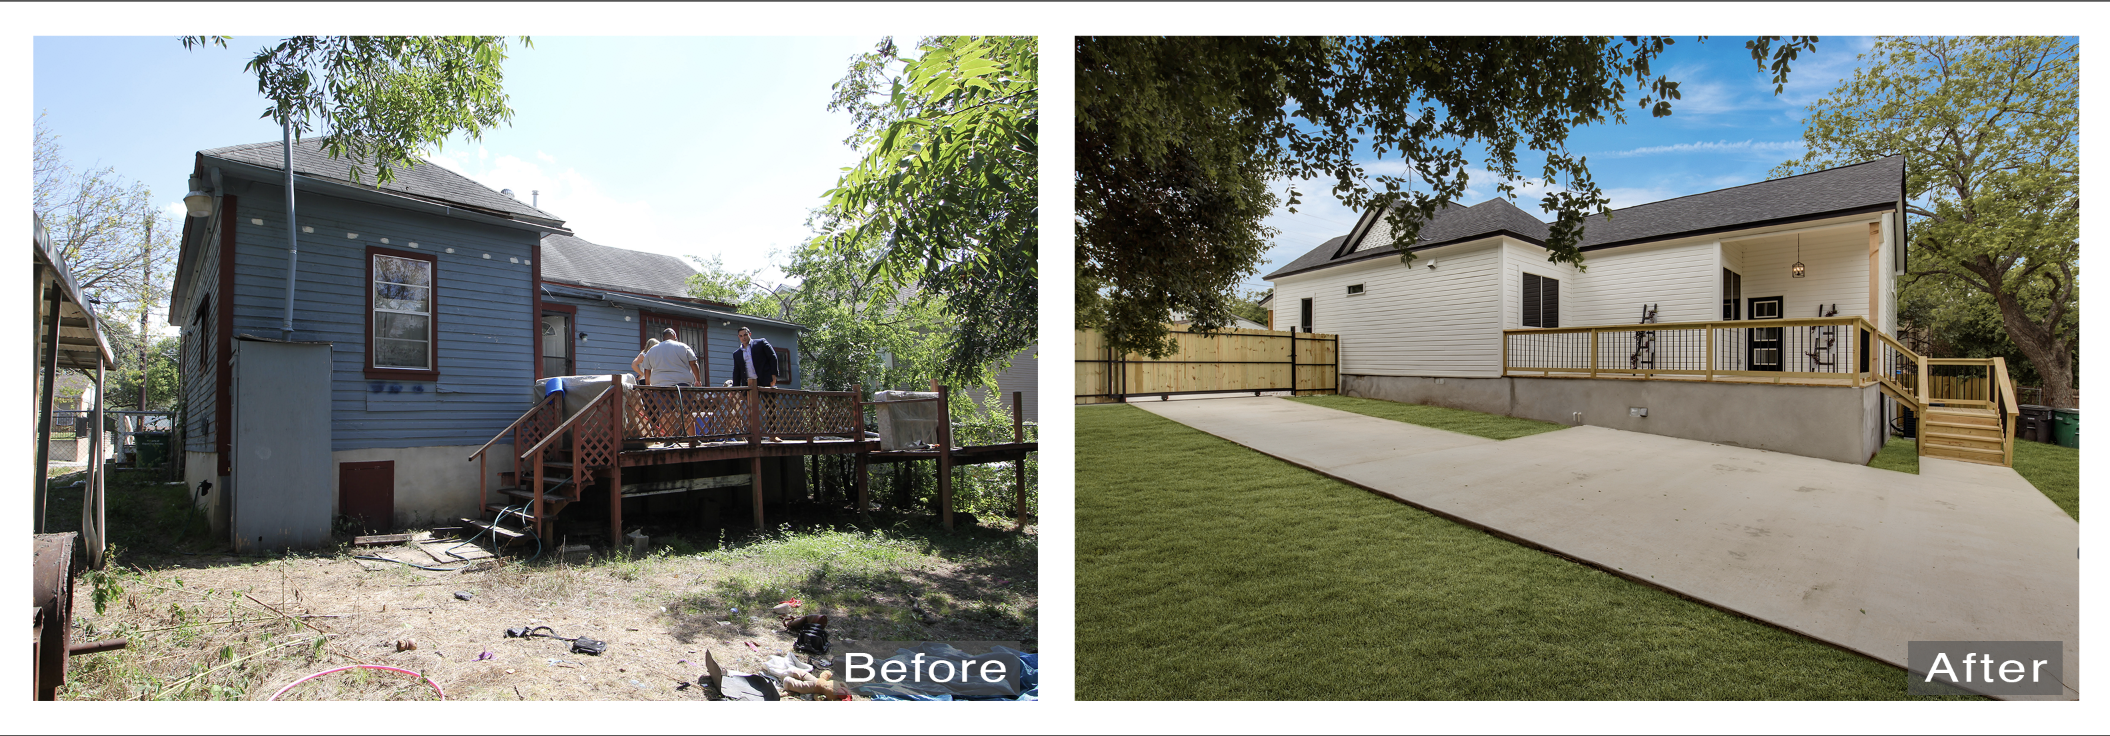 517 Burleson Before & After Backyard .png